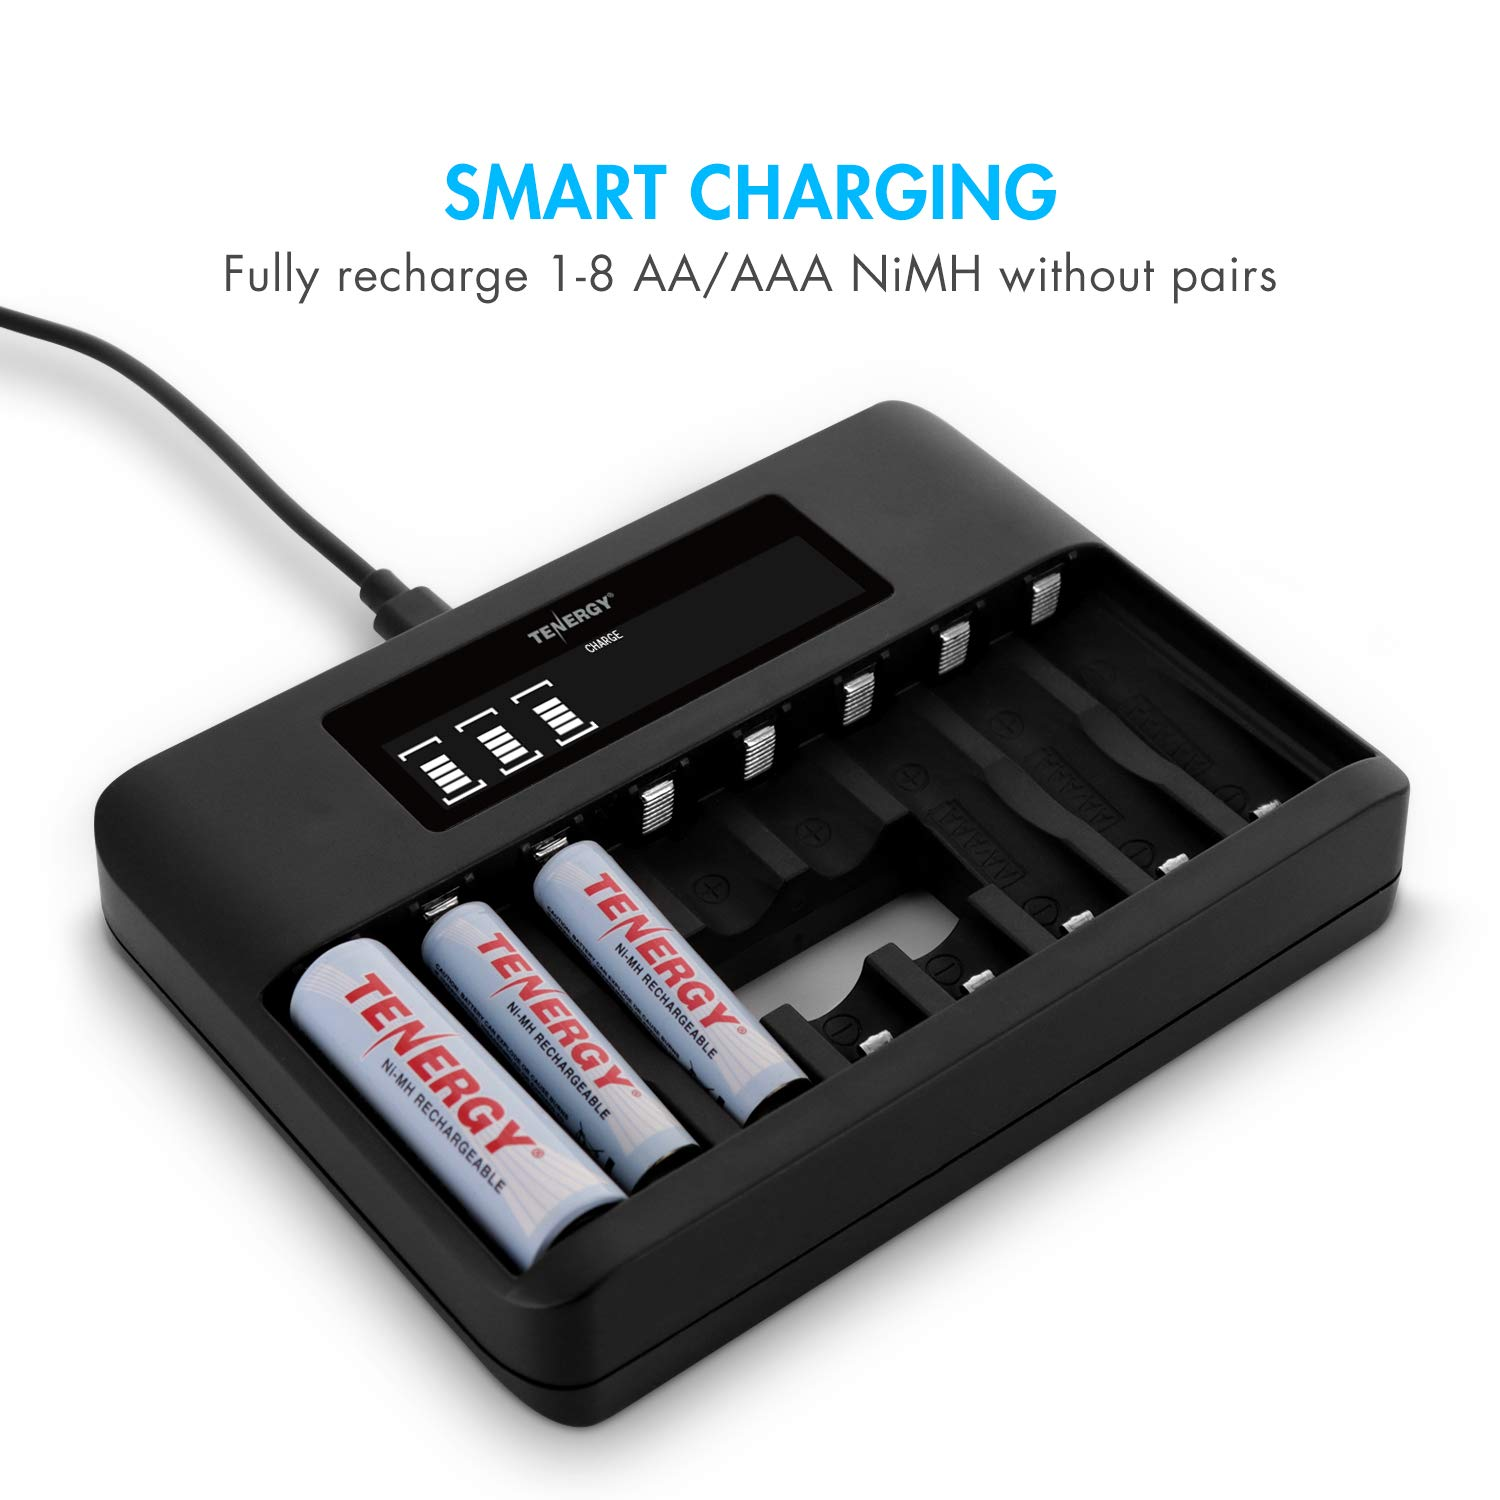 Tenergy TN480U 8-Bay LCD Display Fast Charger for NiMH AA AAA Rechargeable Batteries with 4pcs 2500mah AA and 4pcs 1000mah AAA Rechargeable Batteries